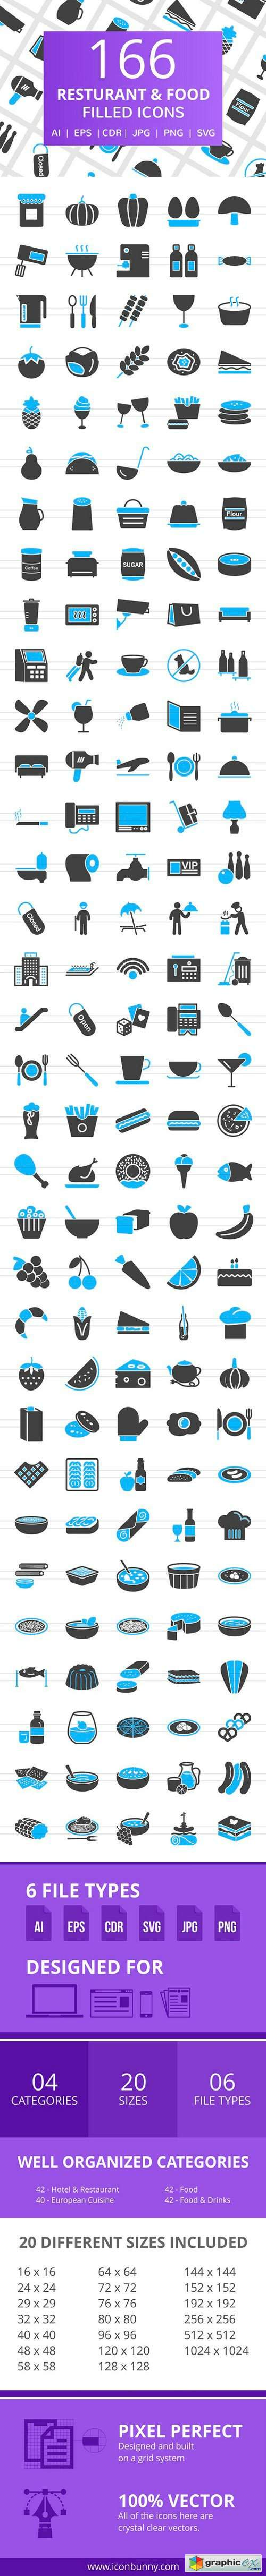 166 Restaurant & Food Filled Icons